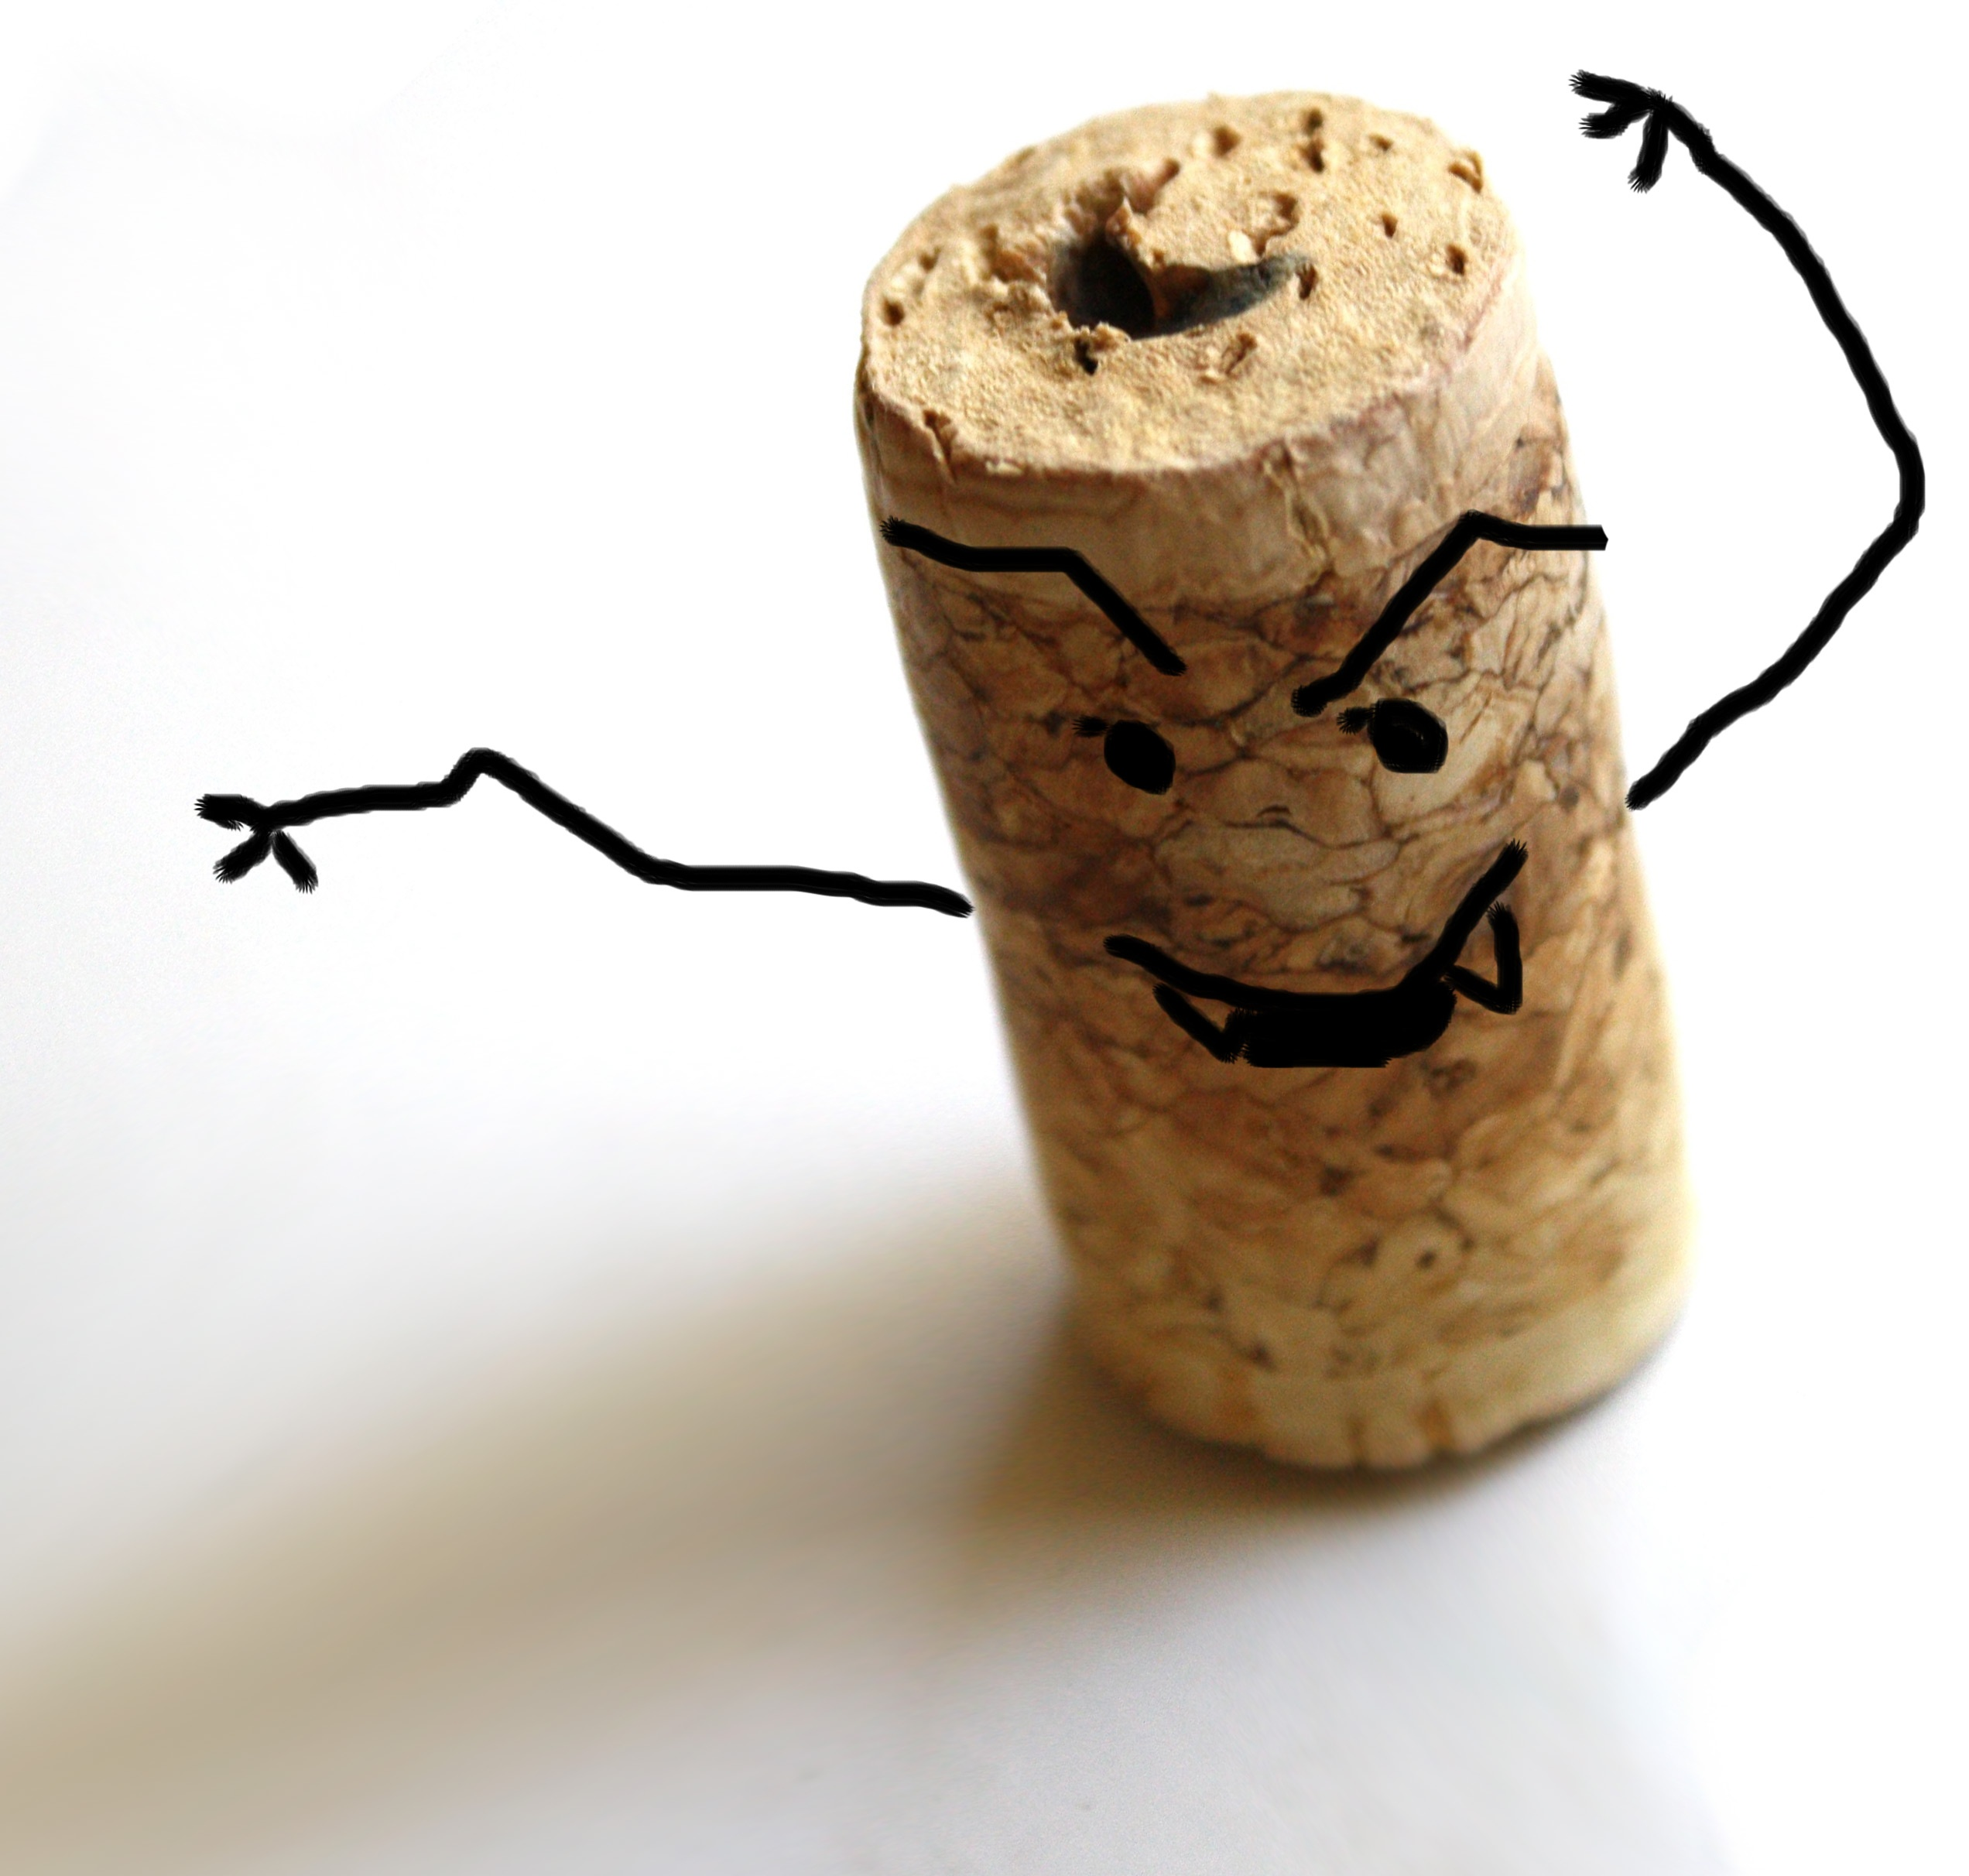 Corks can cause TCA